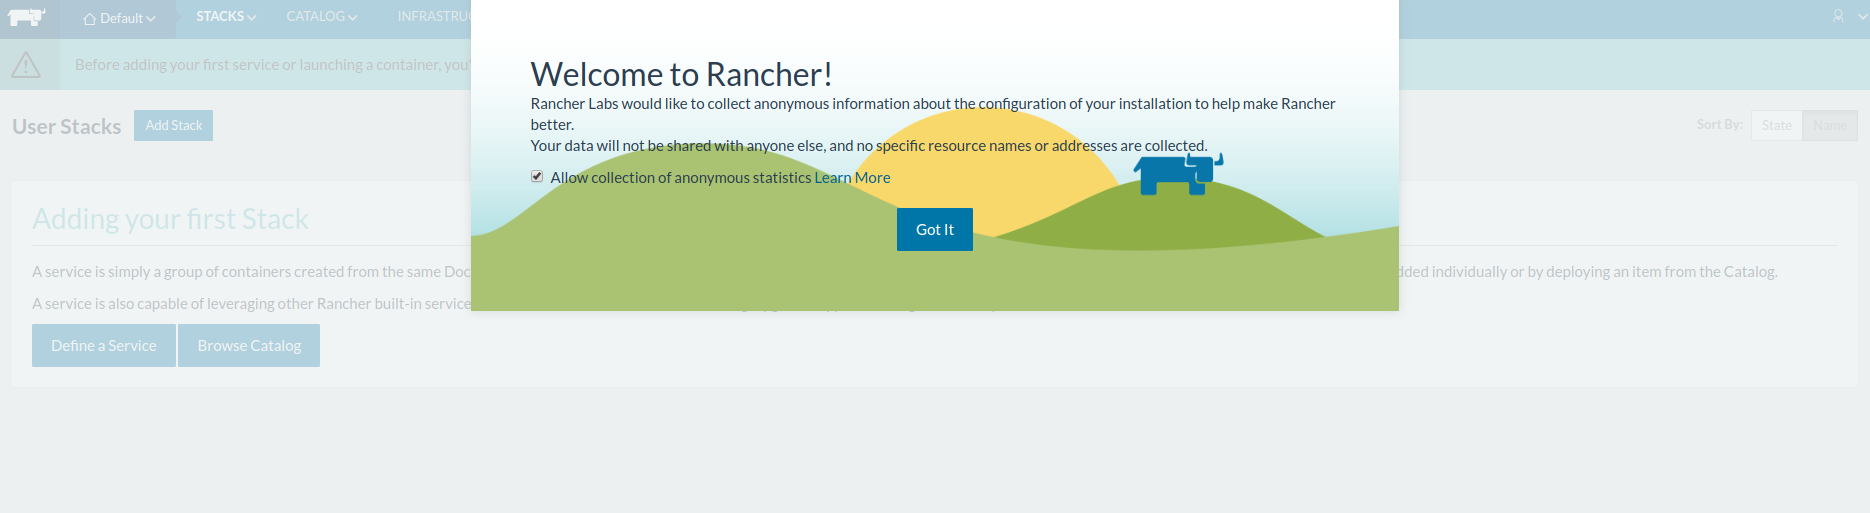 Welcome to Rancher modal